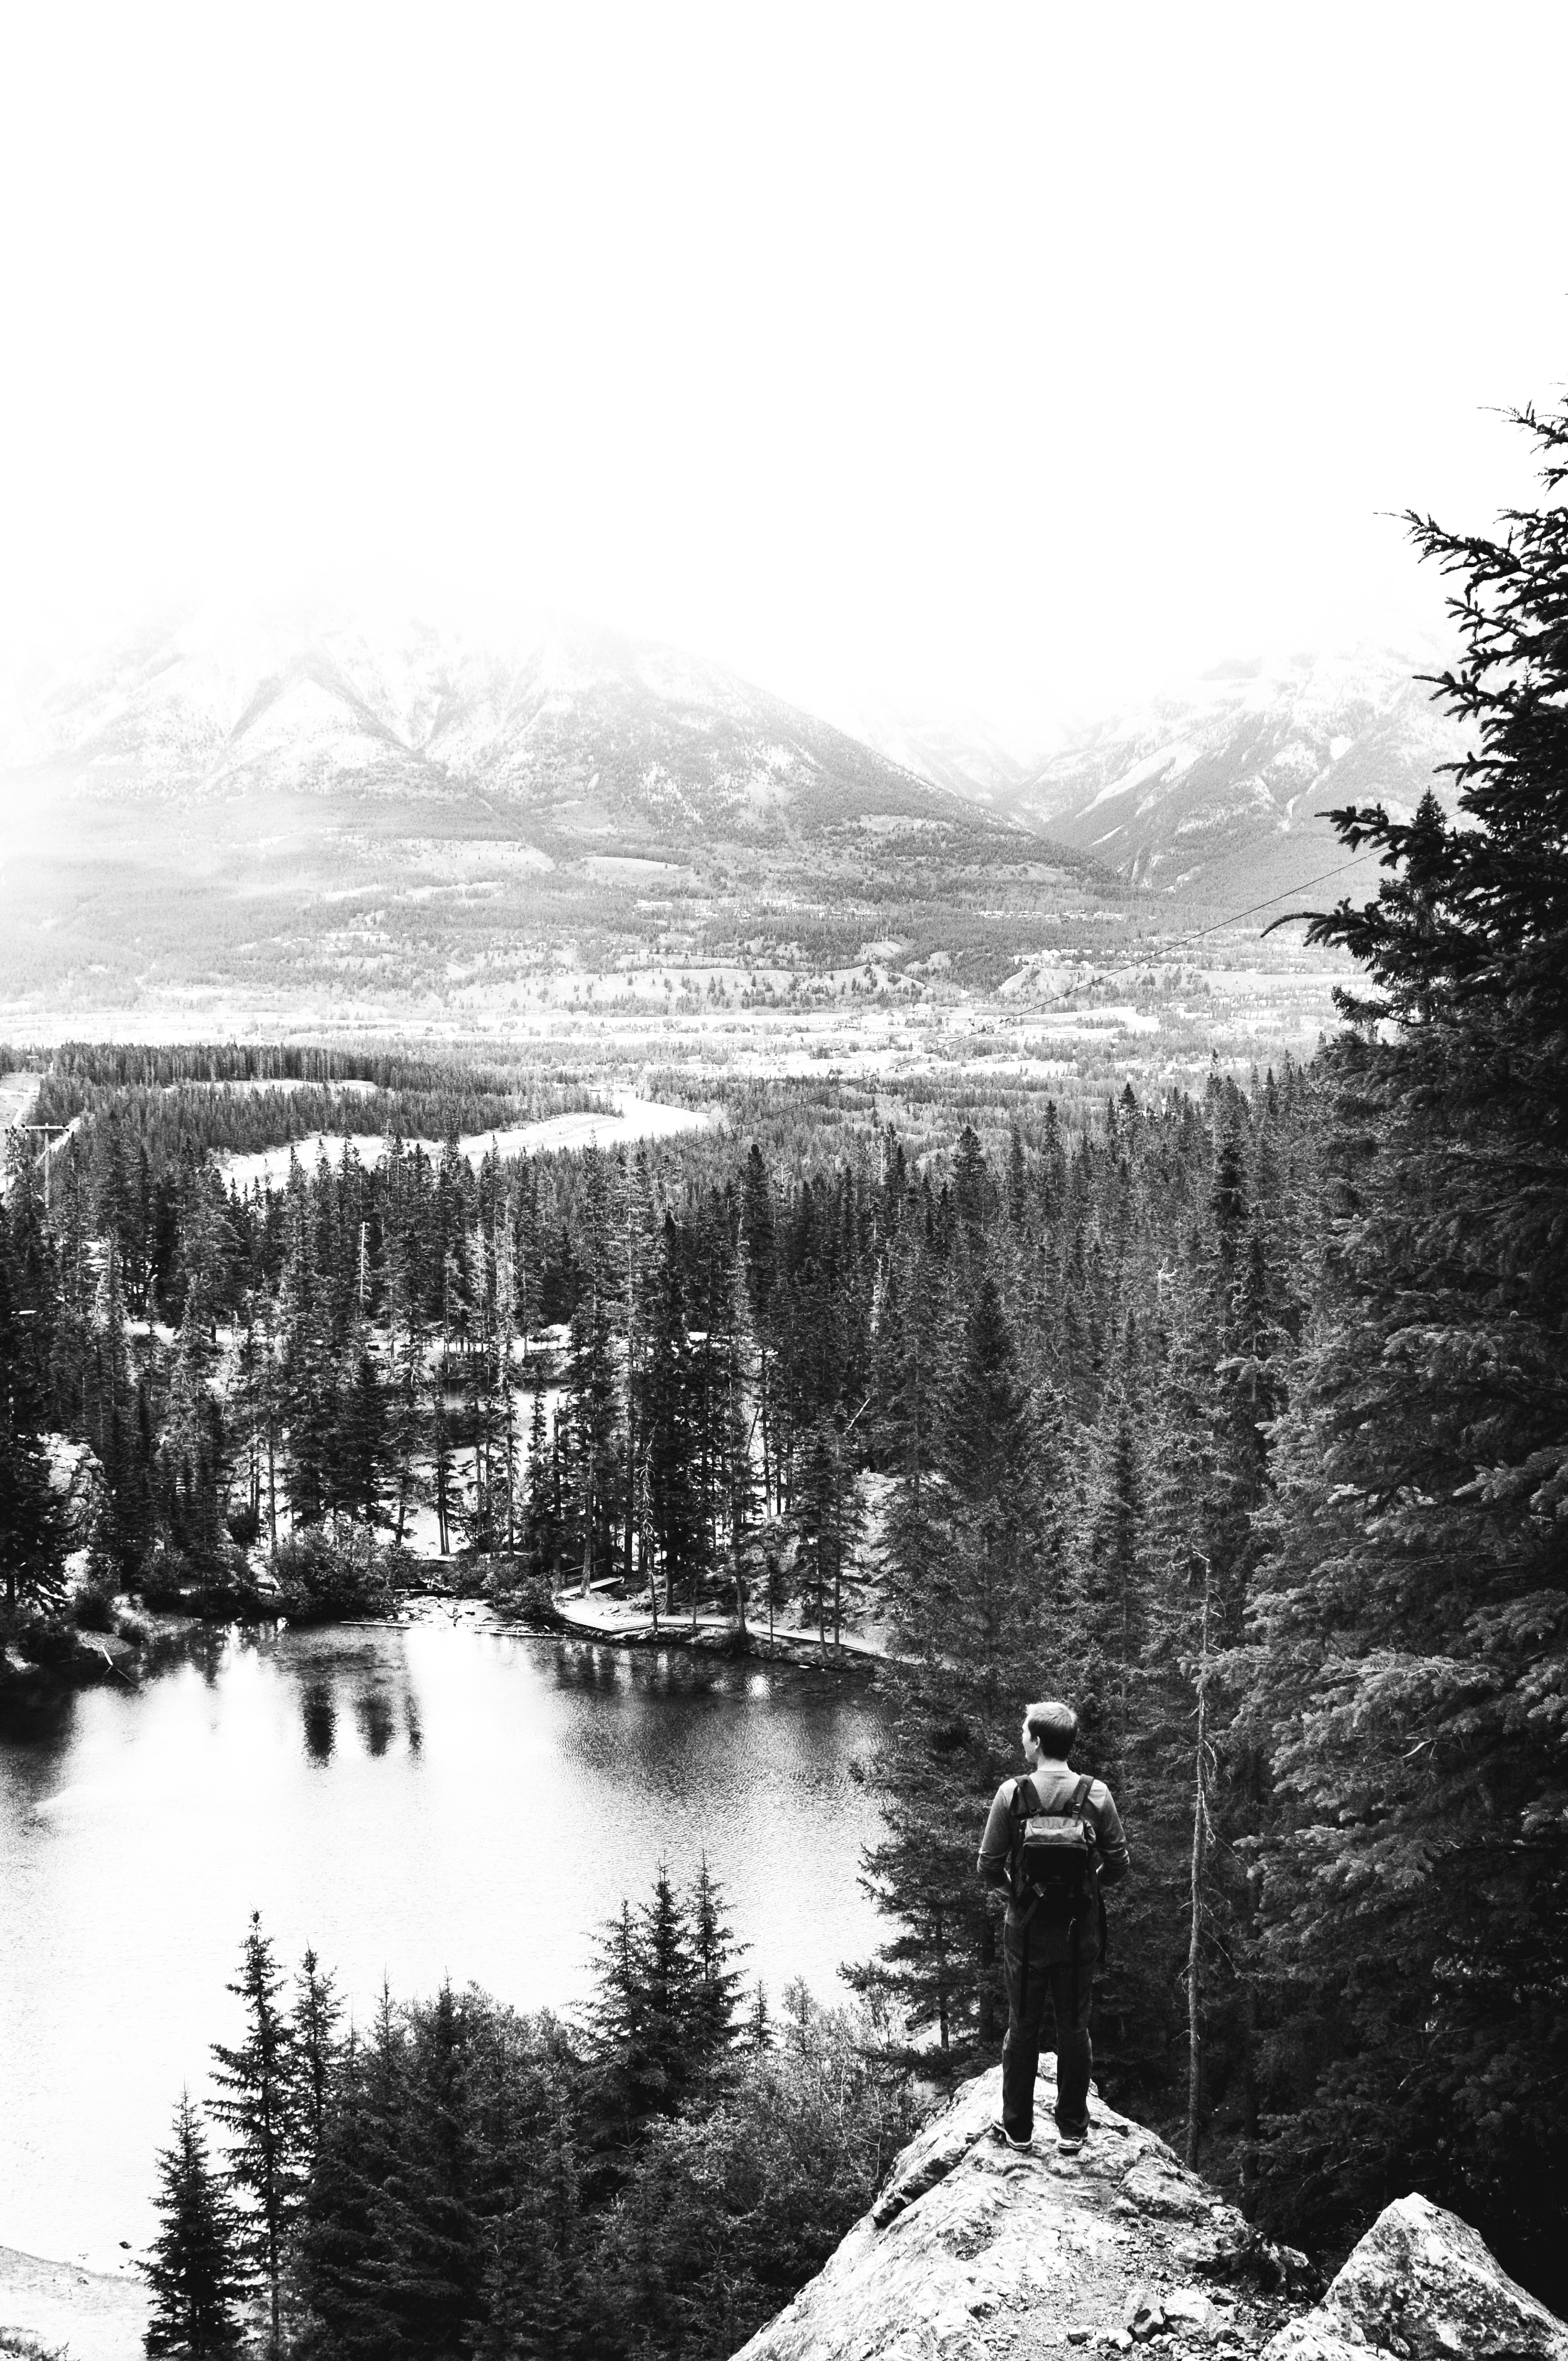 Here is banff in black and white see more pictures from canada here here here and here